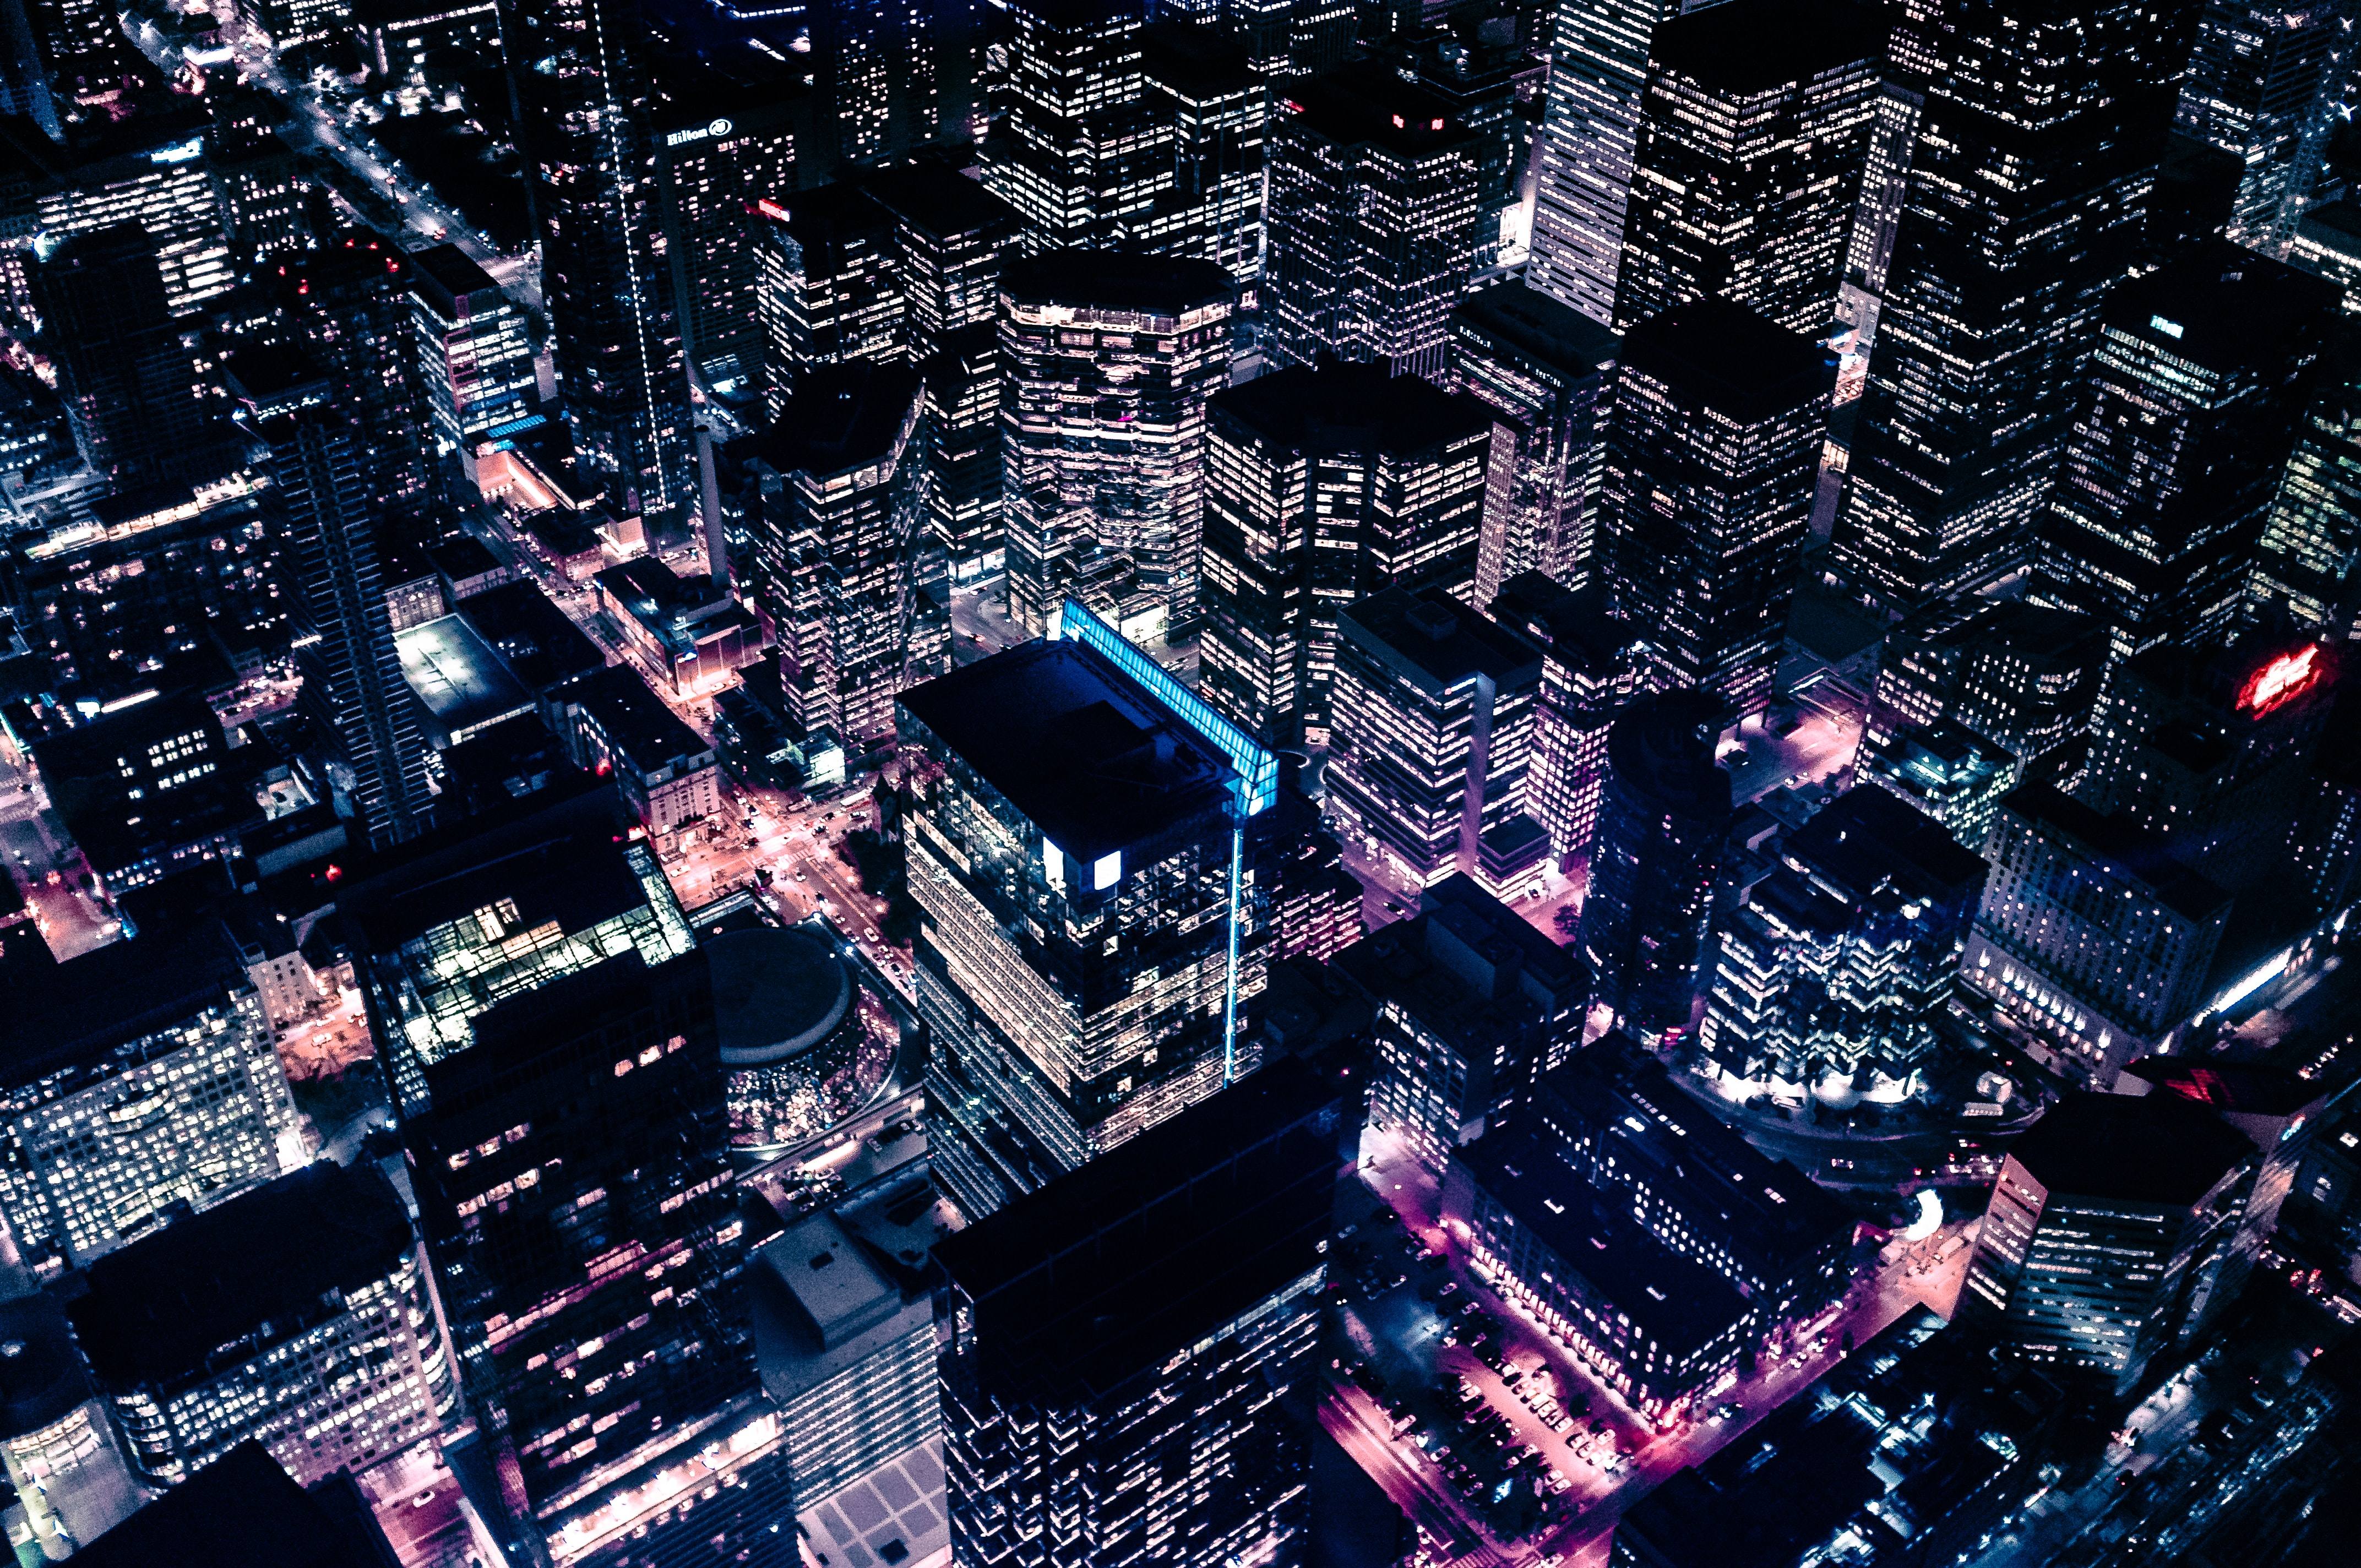 bird's eye view of lighted high-rise buildings